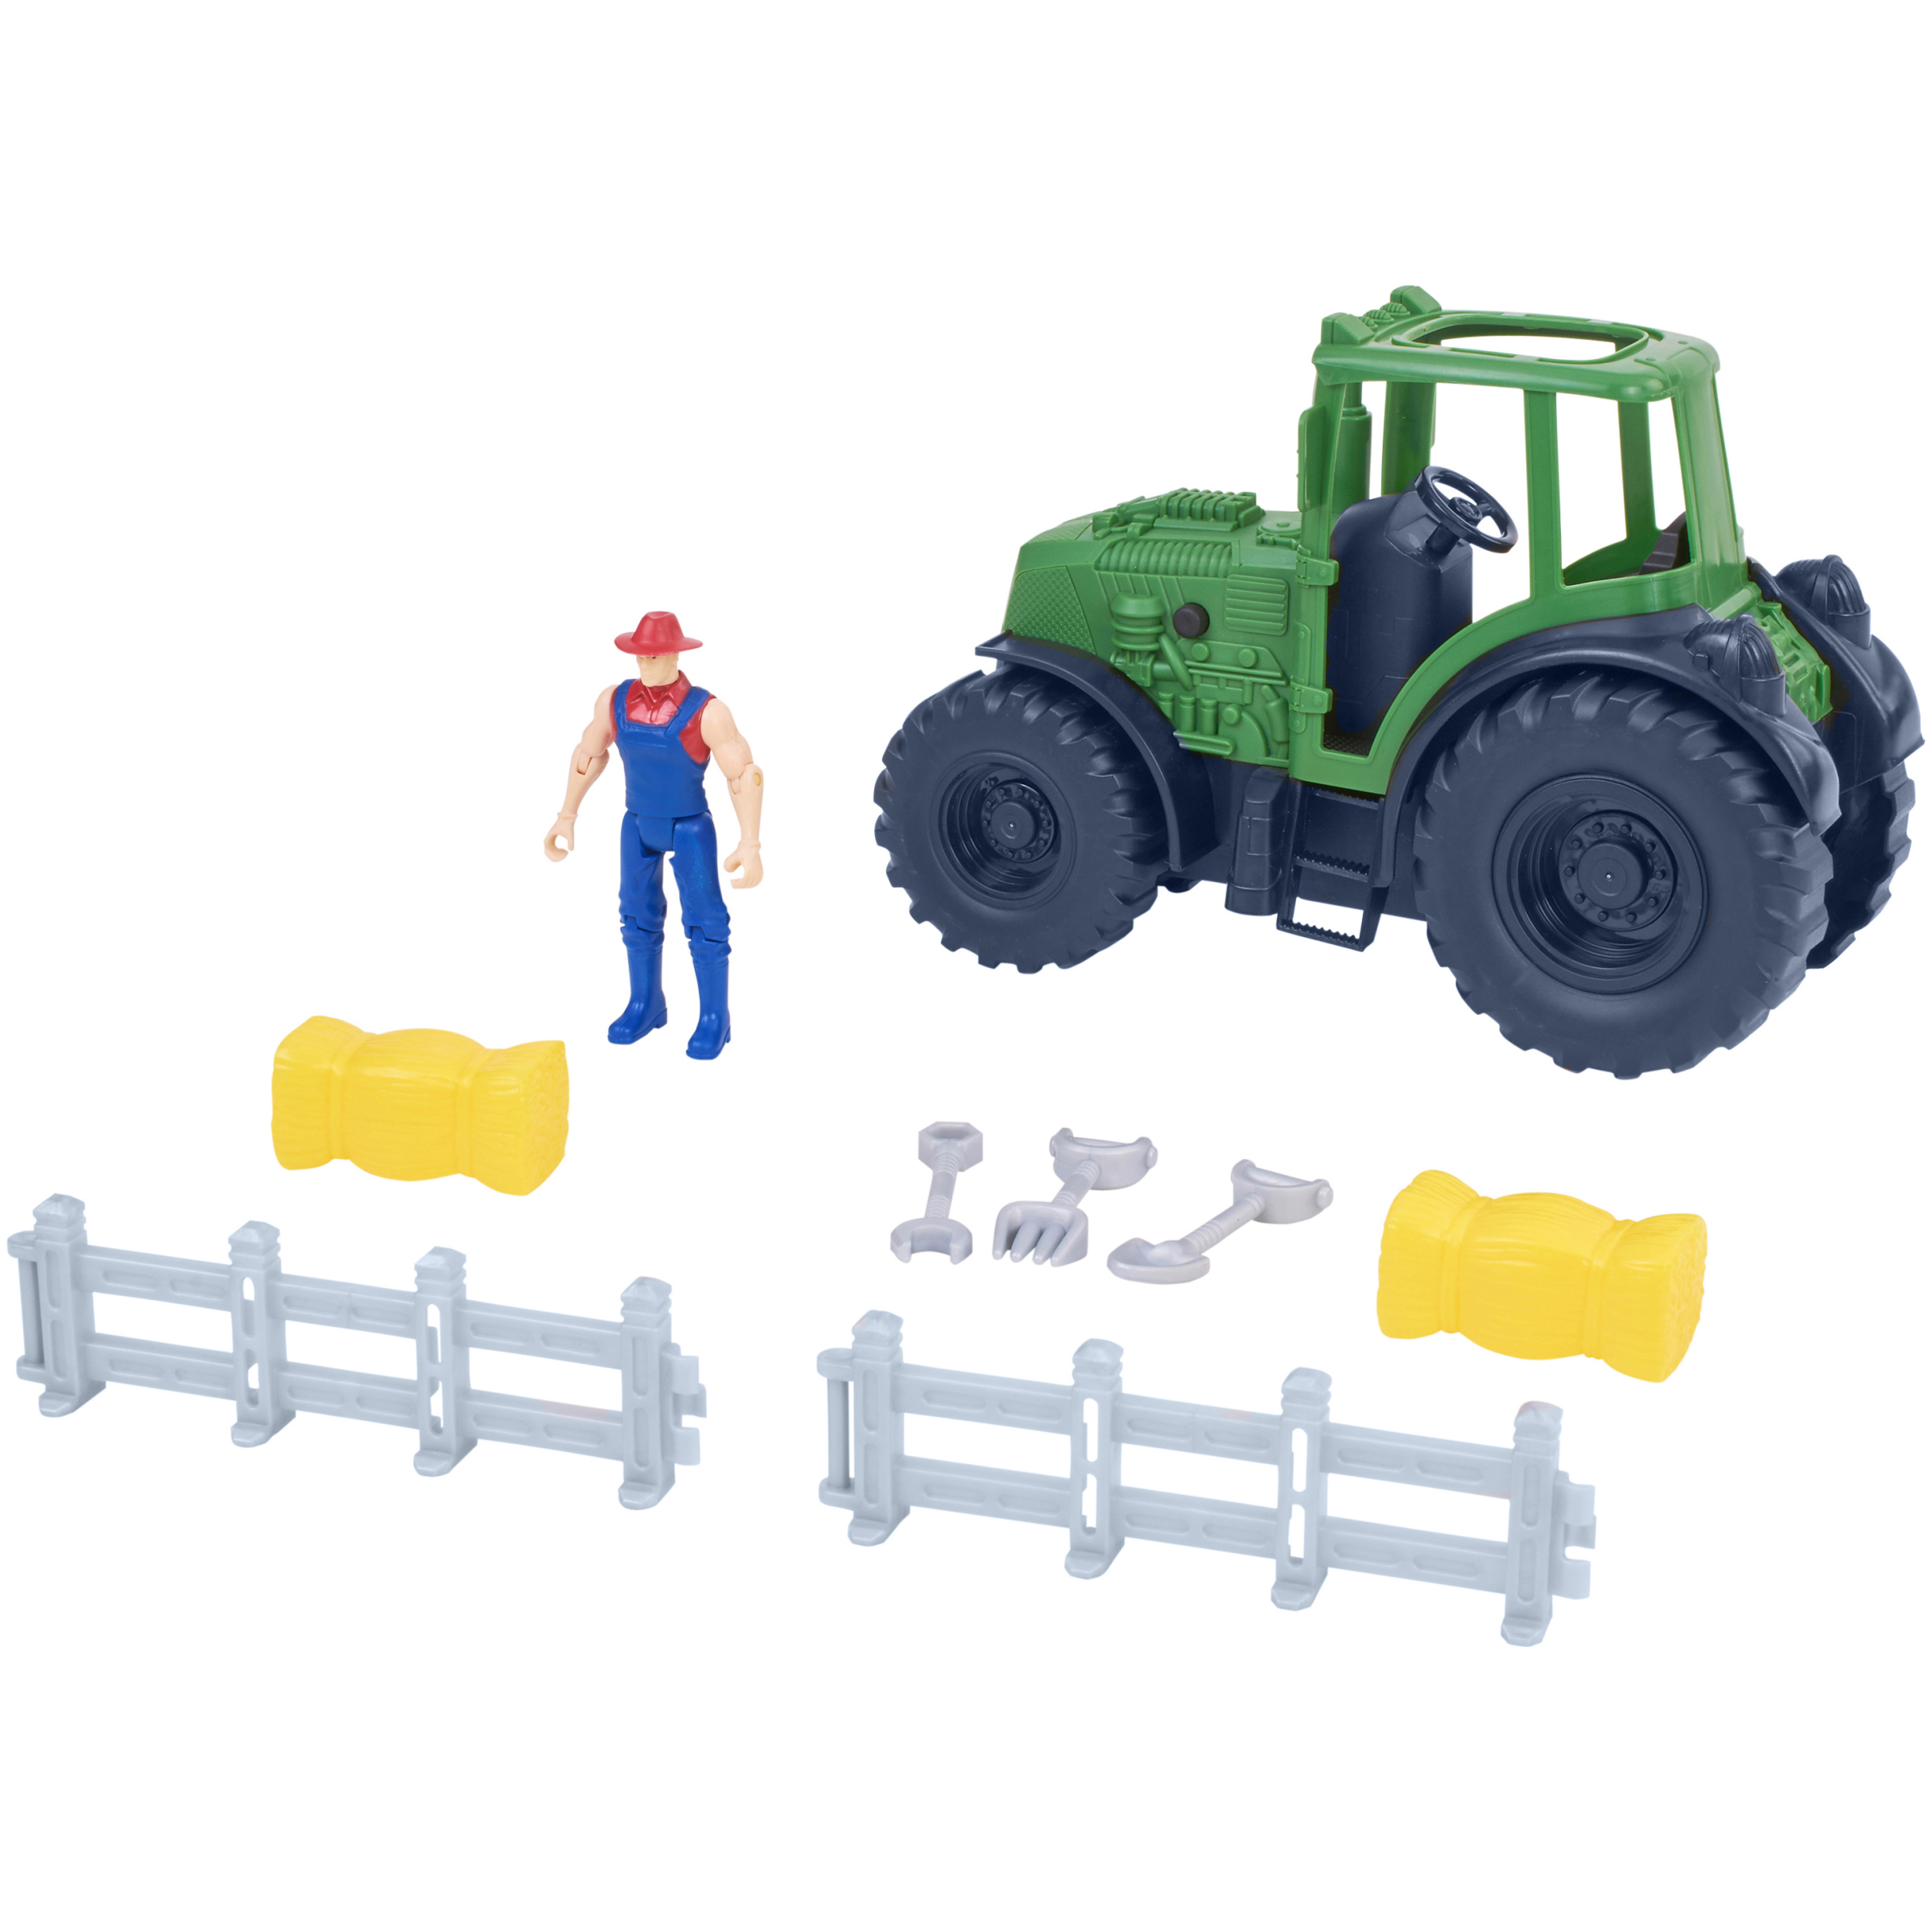 Kid Connection 9-Piece Light & Sound Farm Tractor Play Set, Green